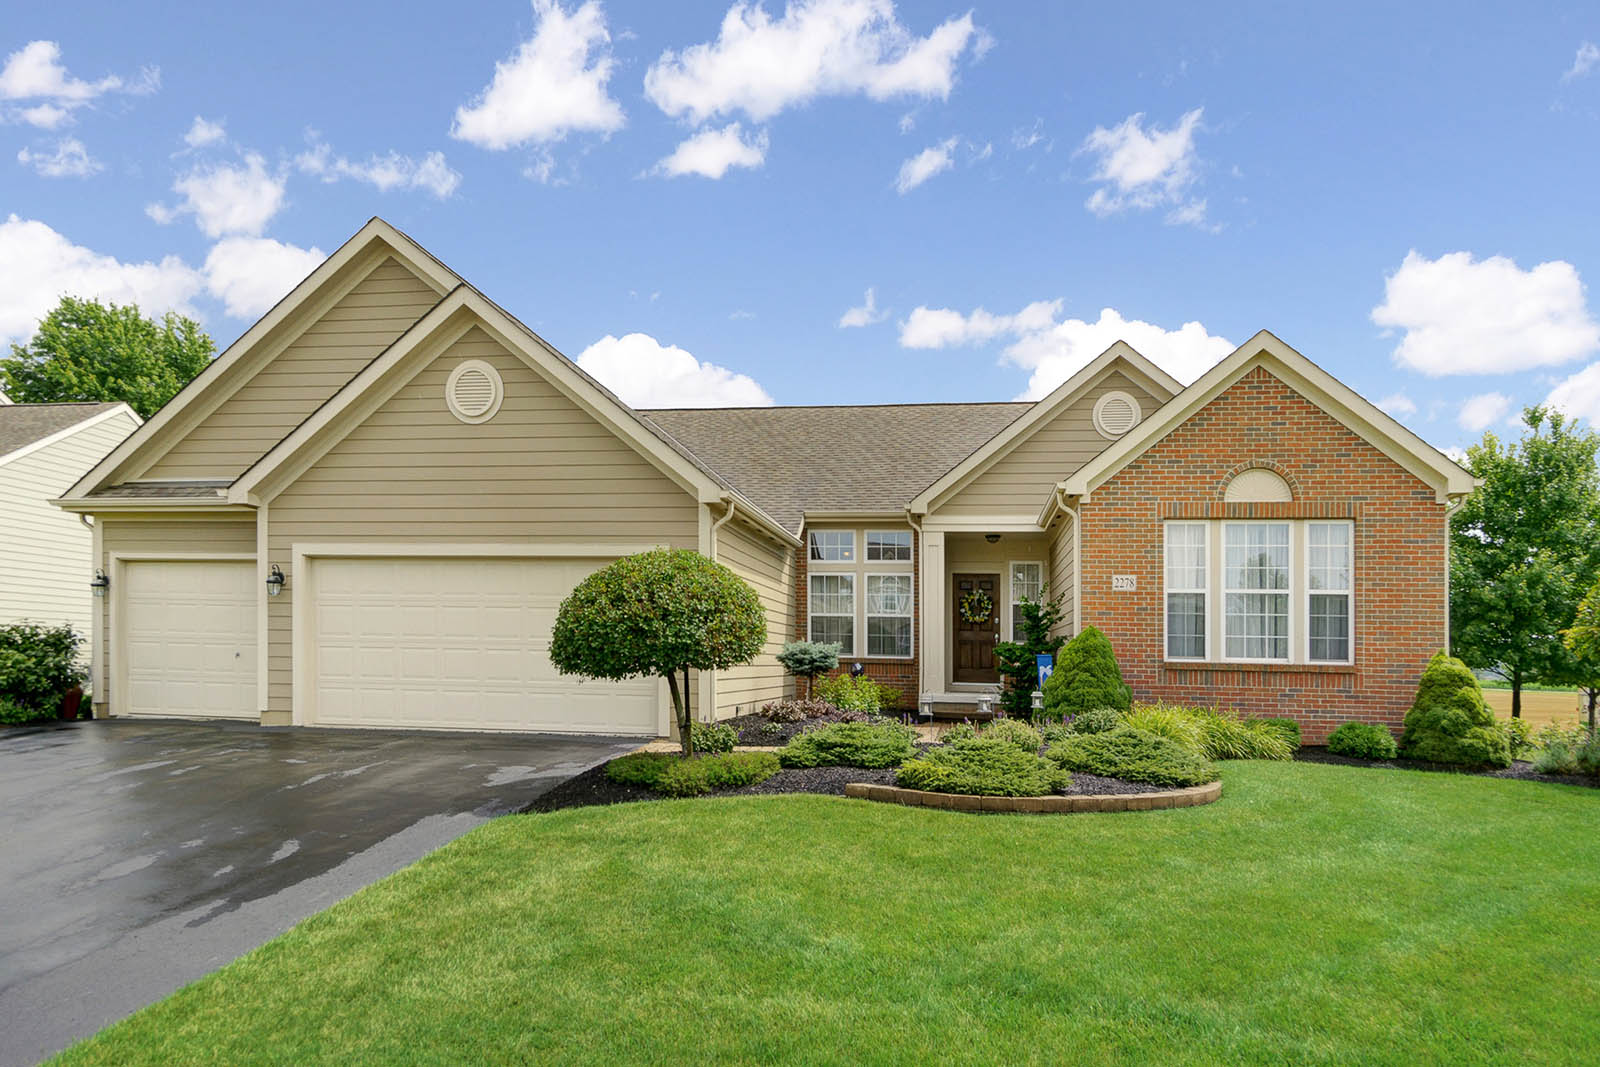 2278 Silver Hill St, Lewis Center Ohio